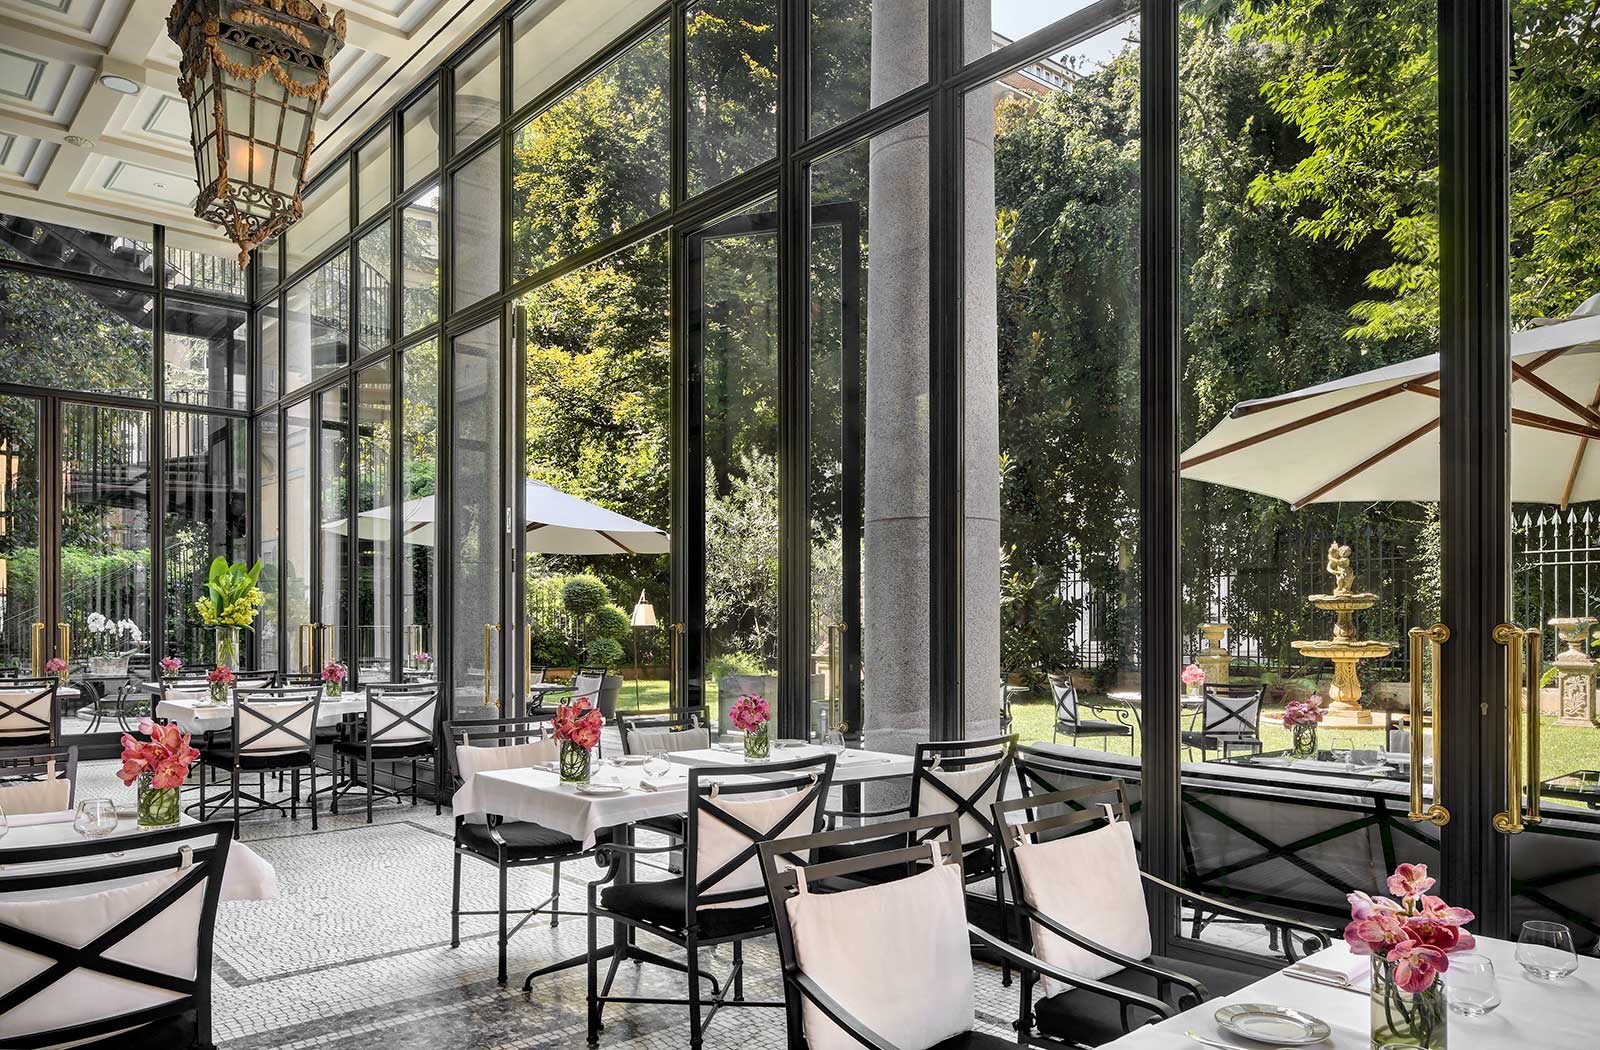 The vanderlust palazzo parigi milano for Hotel di design milano